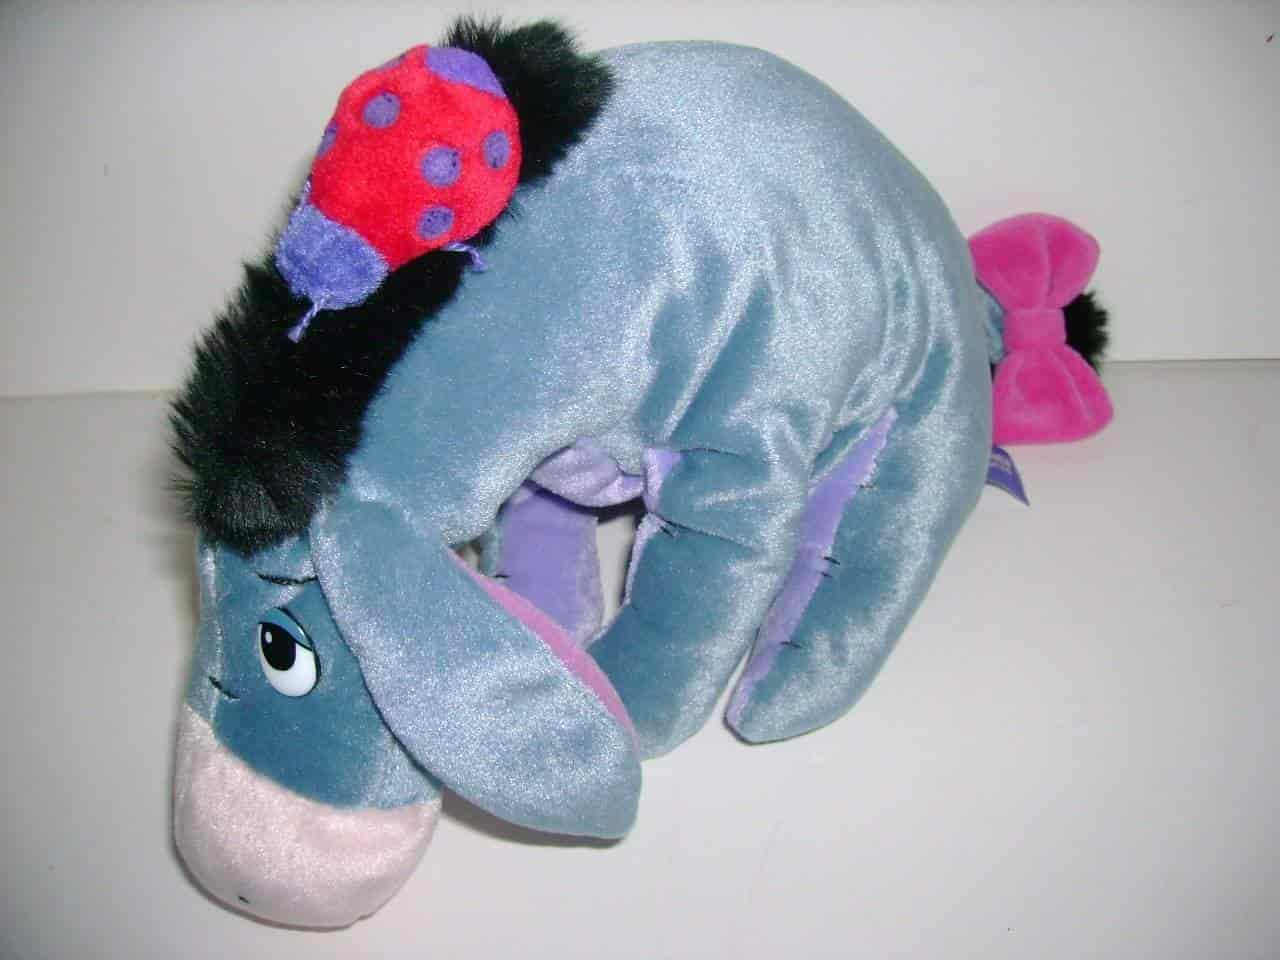 Buy Eeyore With Lady Bug 11 Long From Winnie The Pooh Disney By Gund Flamingo